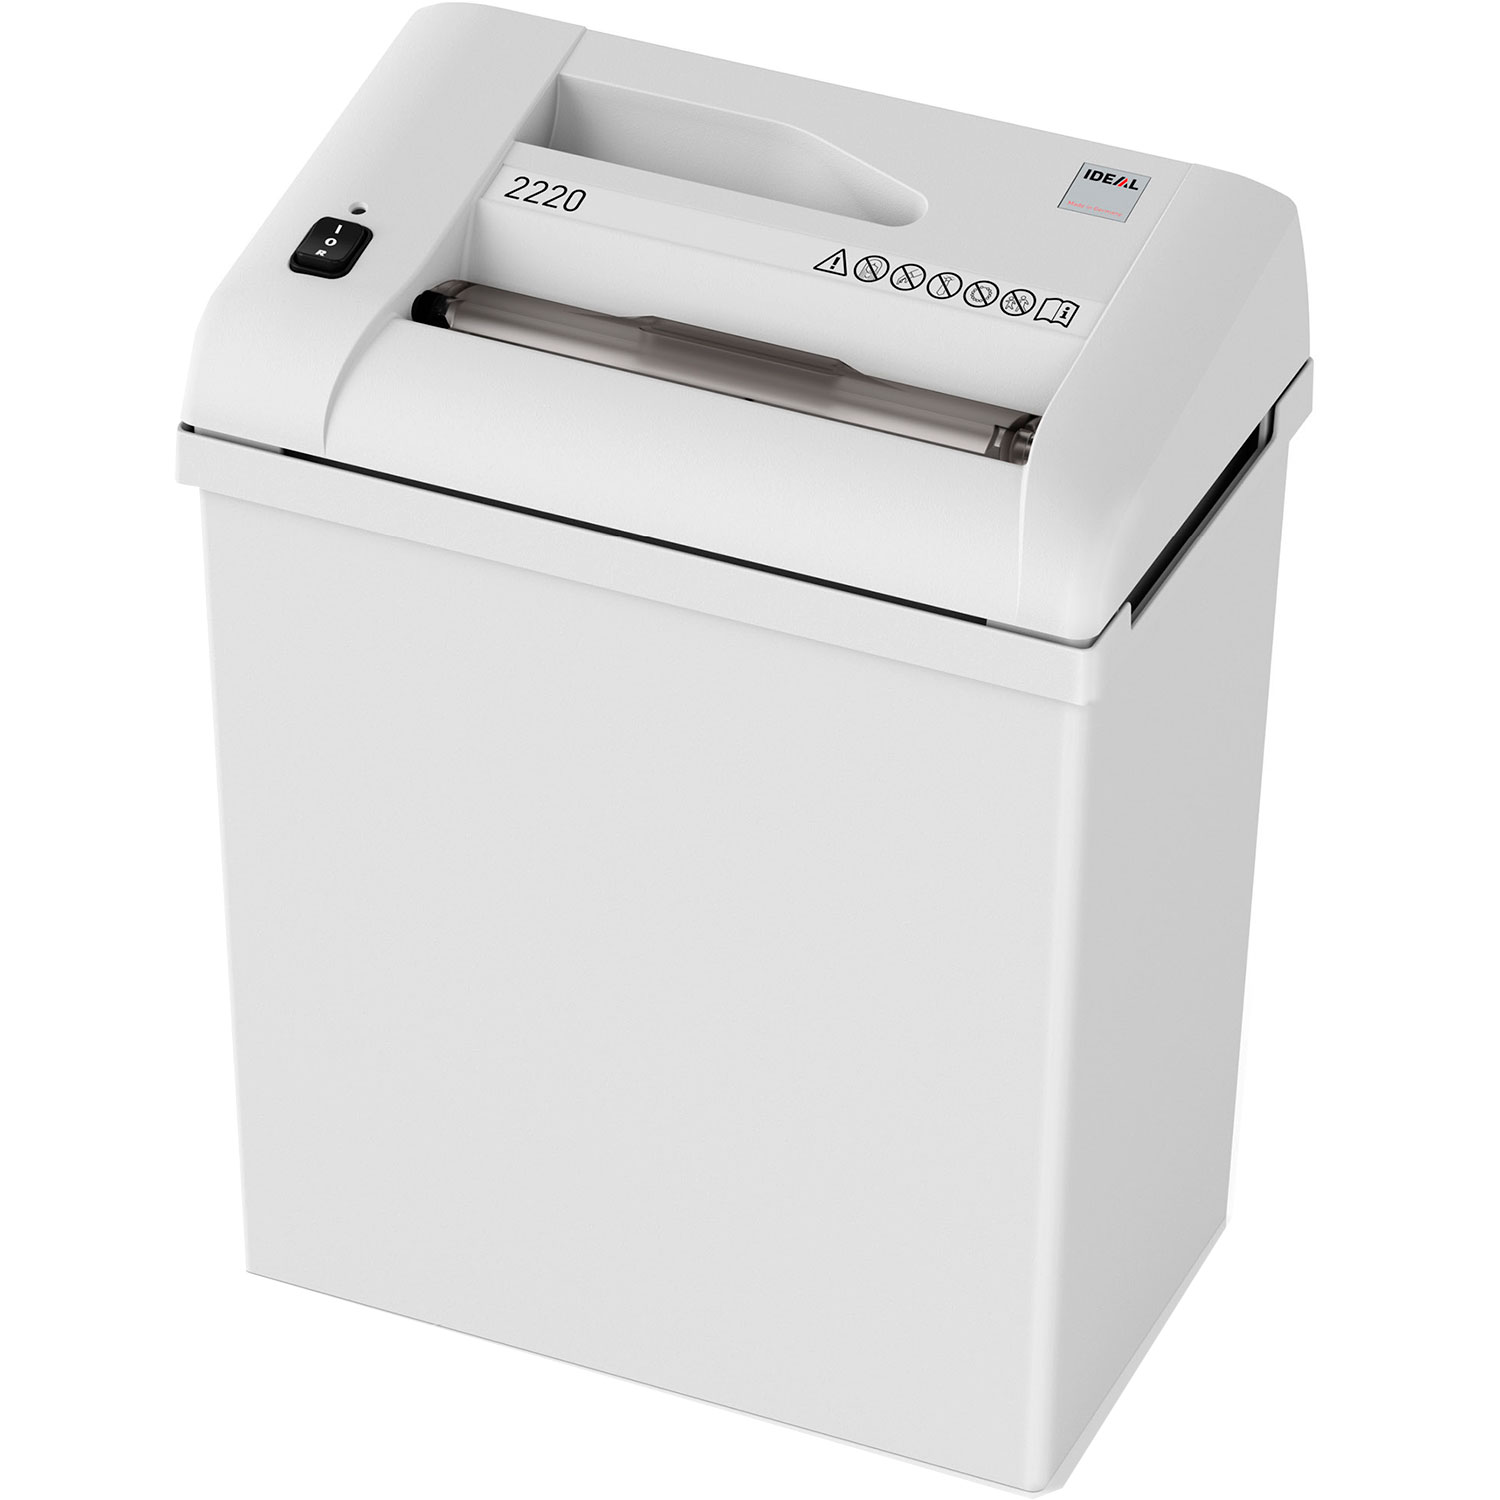 IDEAL 2220 Deskside Shredder